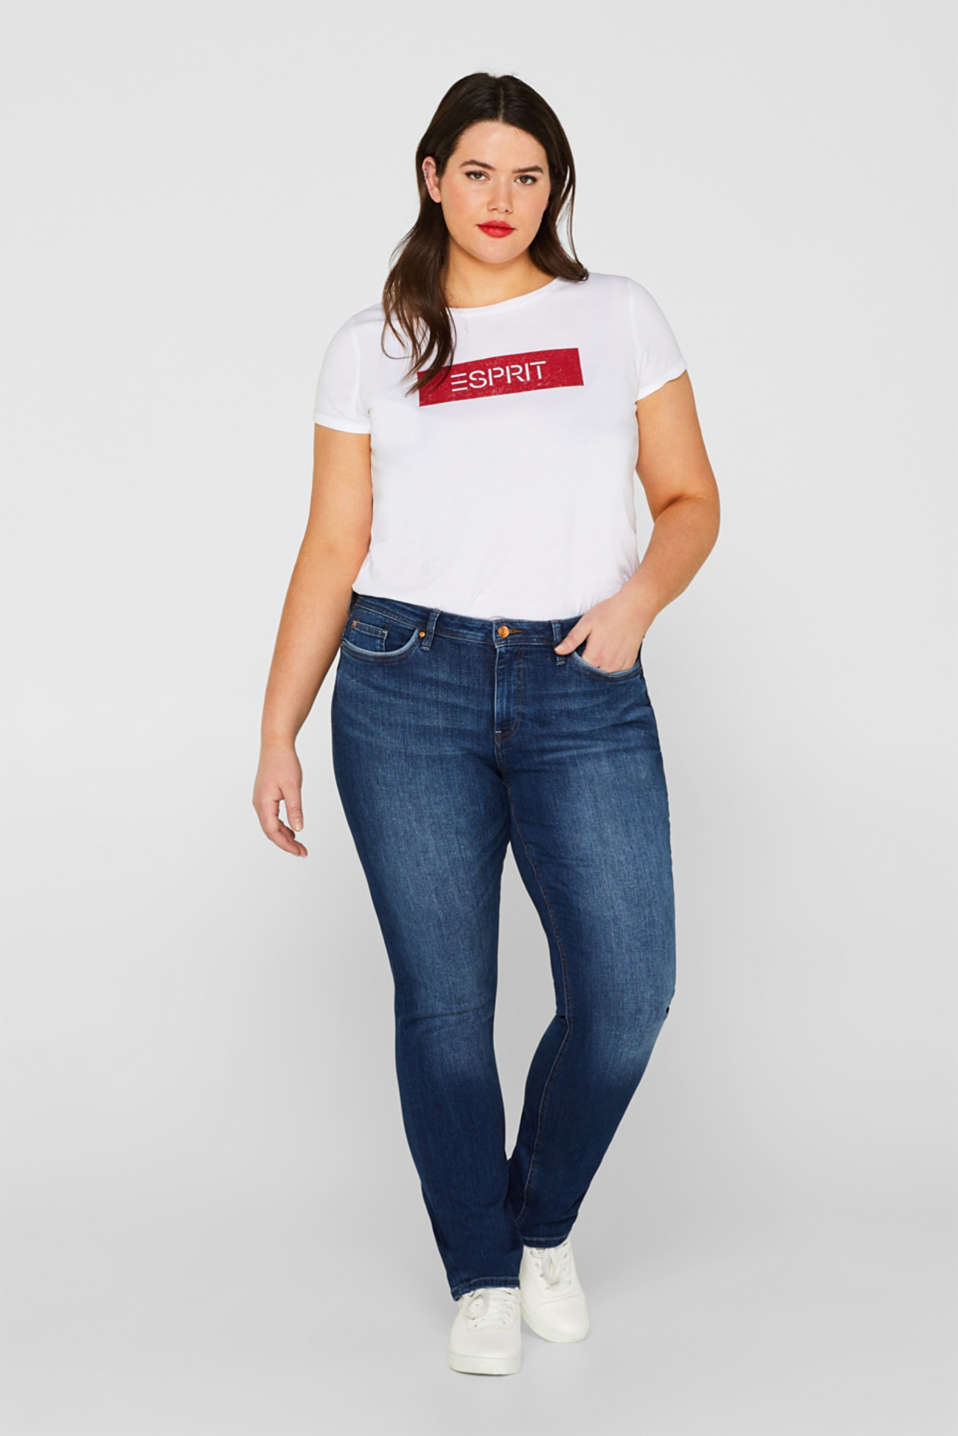 ESPRIT CURVES stretch jeans with washed-out details